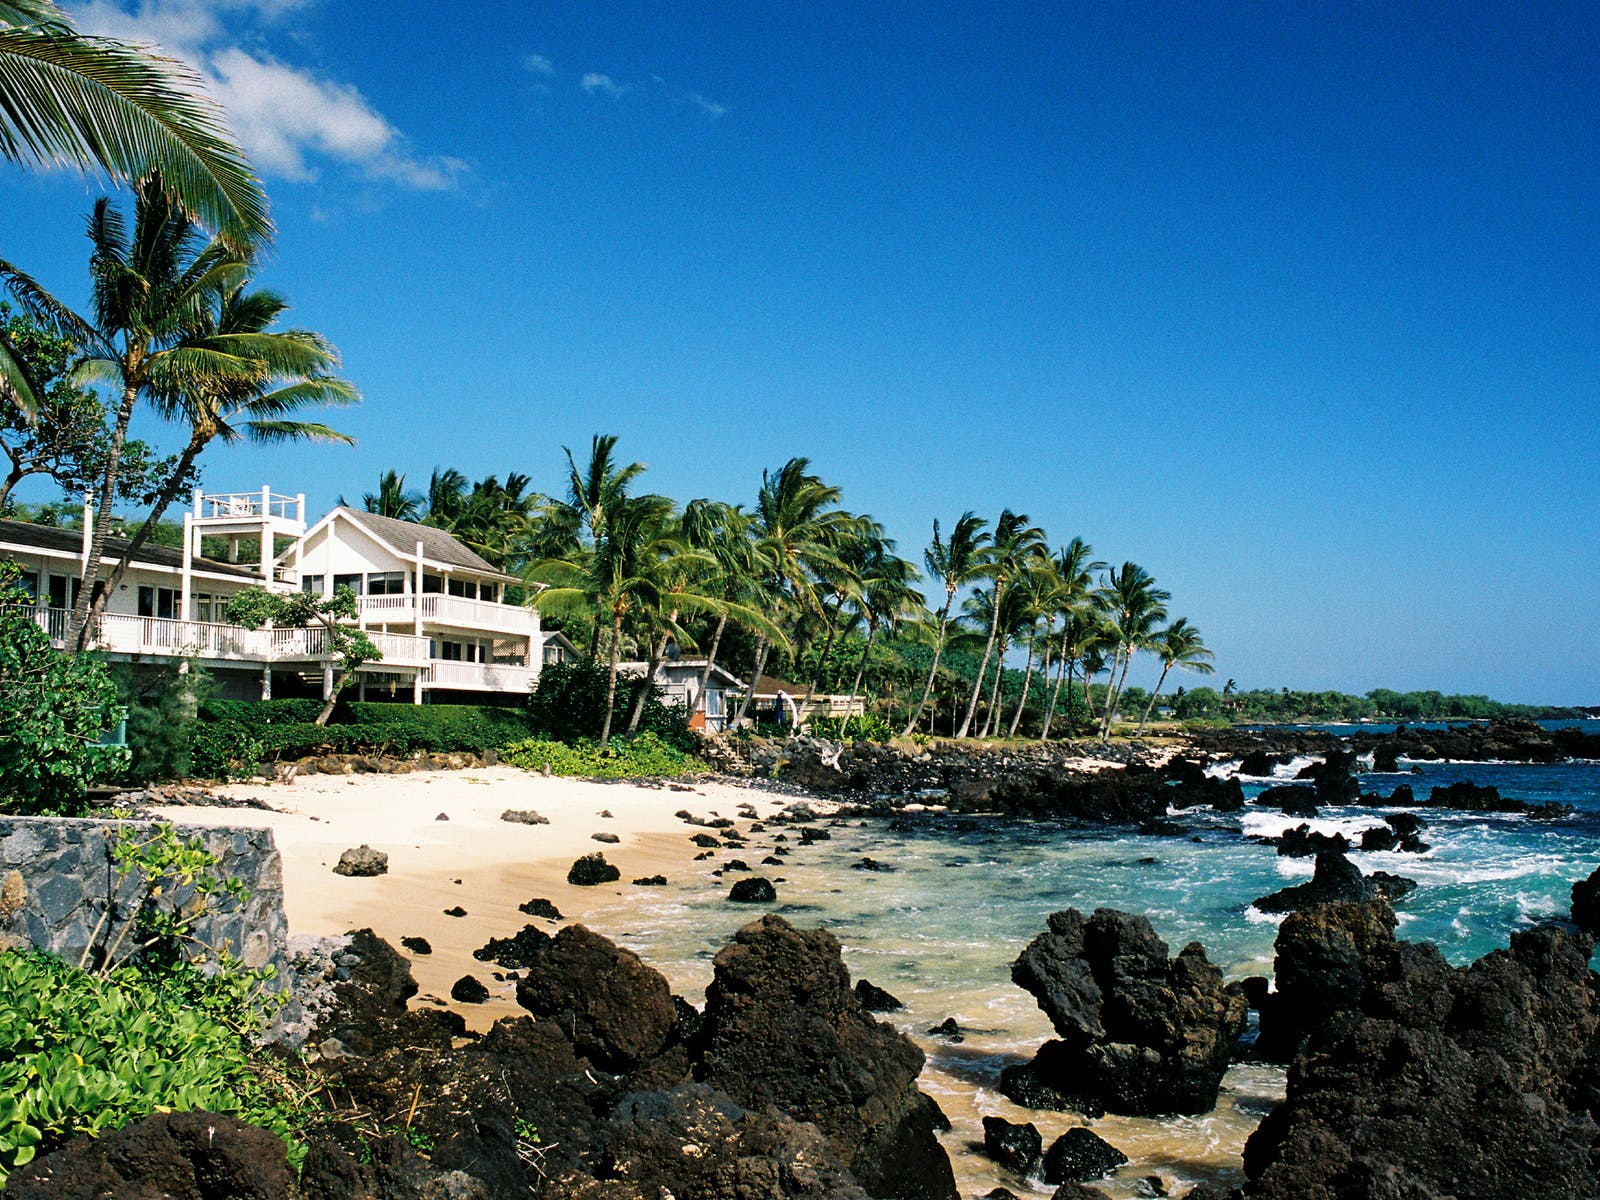 Beachfront vacation home in Maui